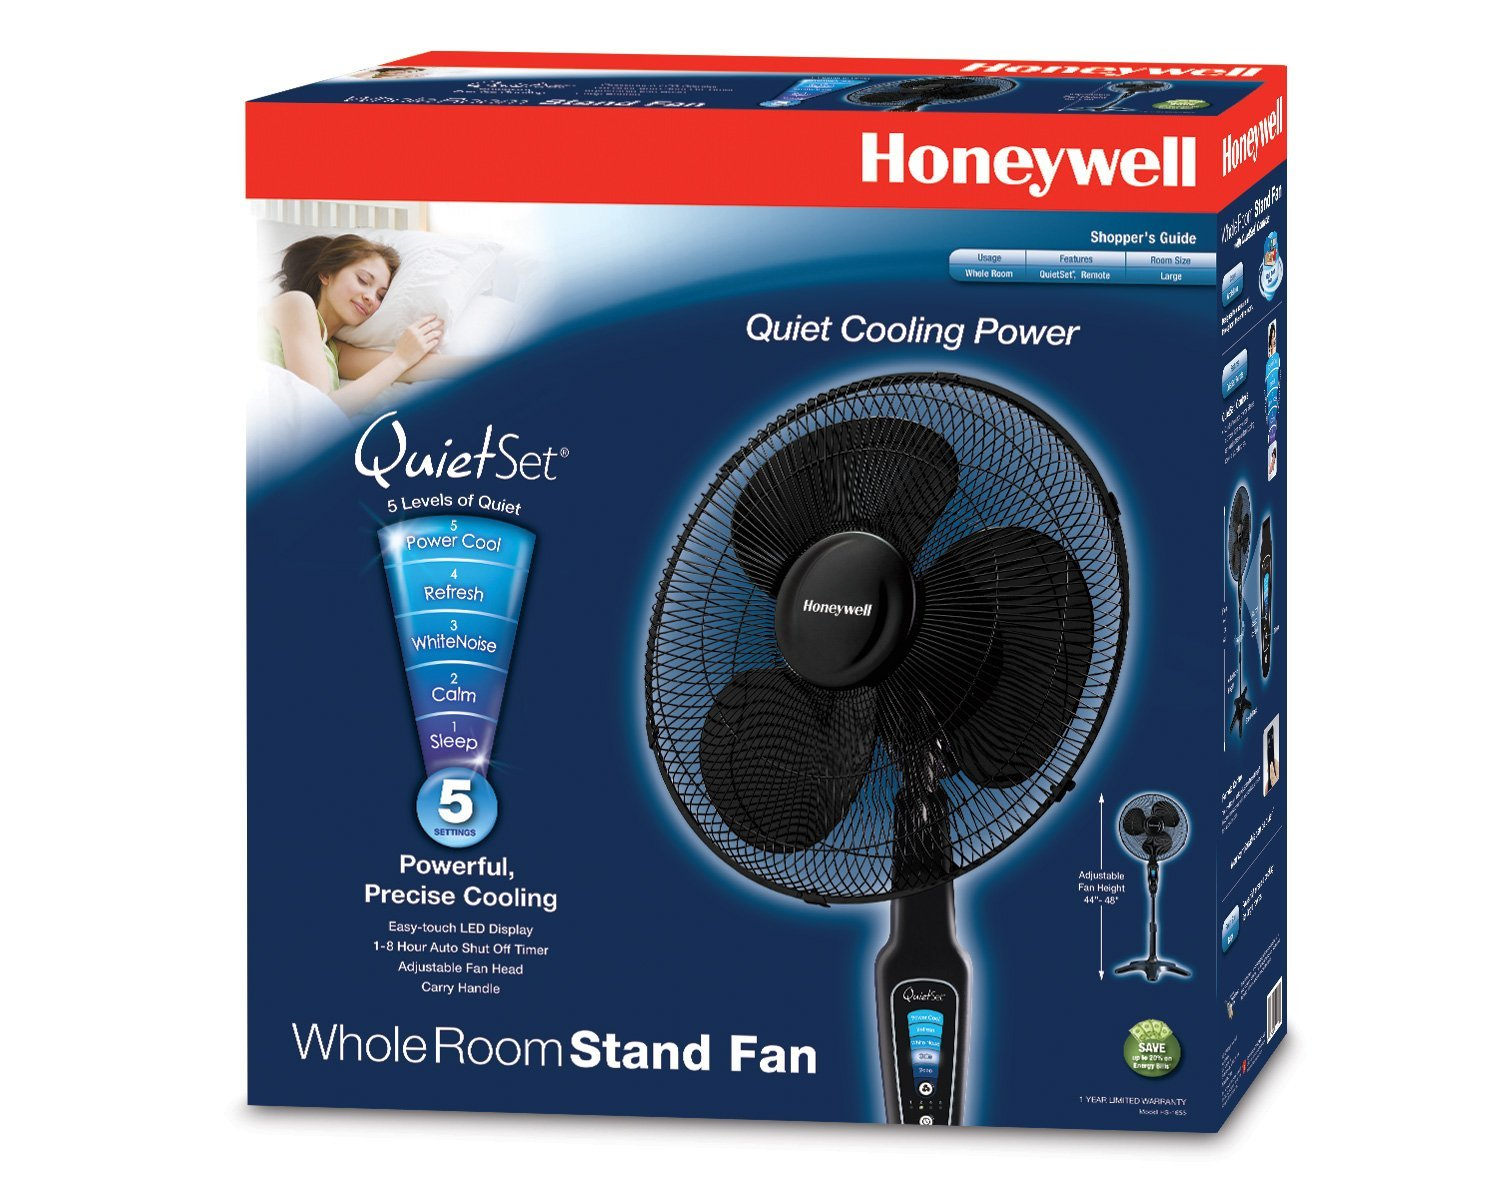 The Honeywell Hs 1655 Quietset 16 Quot Stand Fan Black